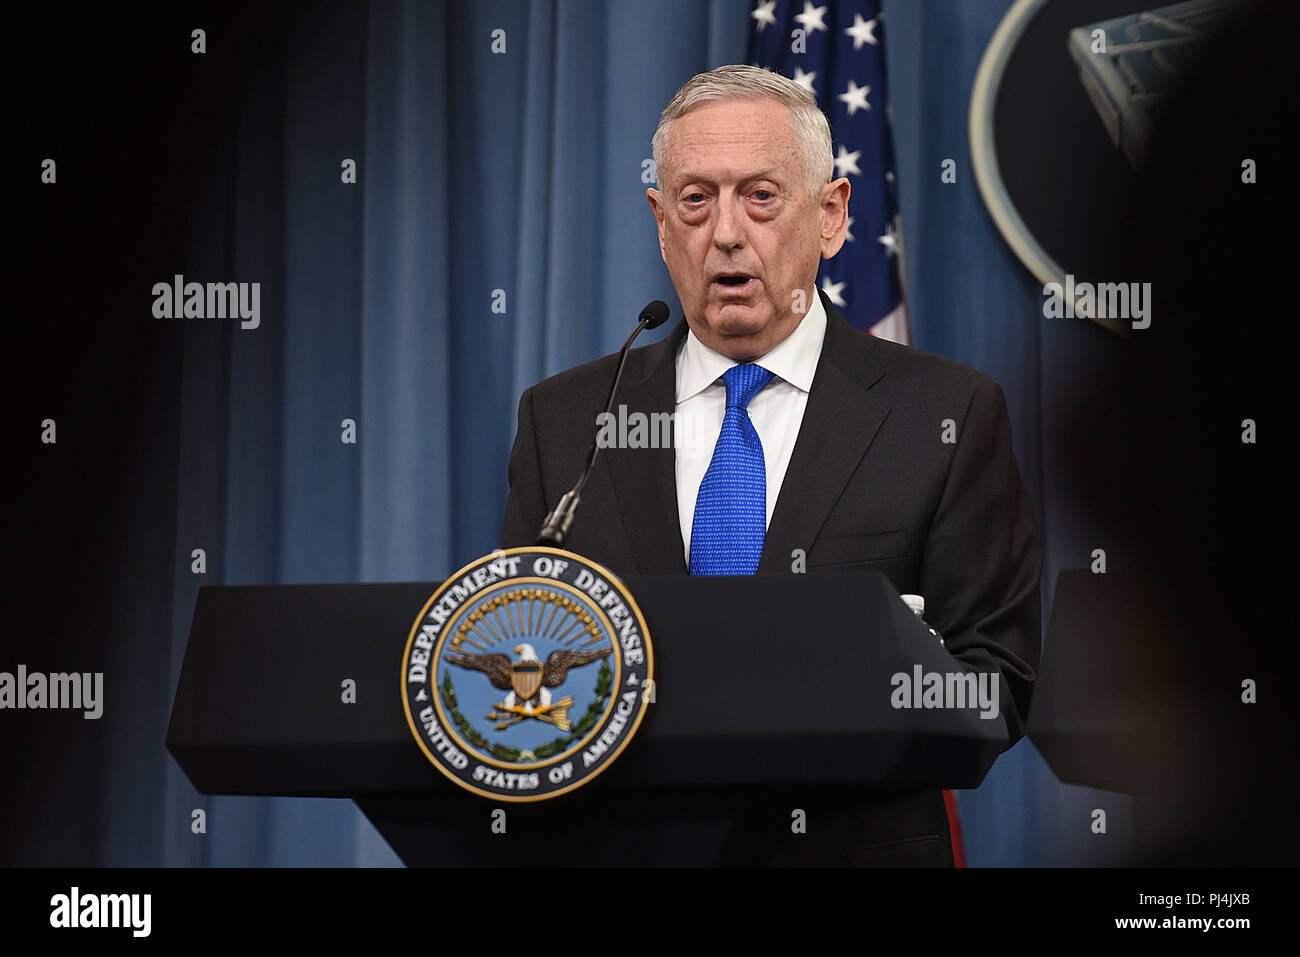 U.S. Secretary of Defense James N. Mattis speaks at a joint press conference with the chairman of the Joint Chiefs of Staff, Marine Corps Gen. Joseph F. Dunford, the Pentagon, Arlington, Va., Aug. 28, 2018. DoD photo by Lisa Ferdinando Stock Photo